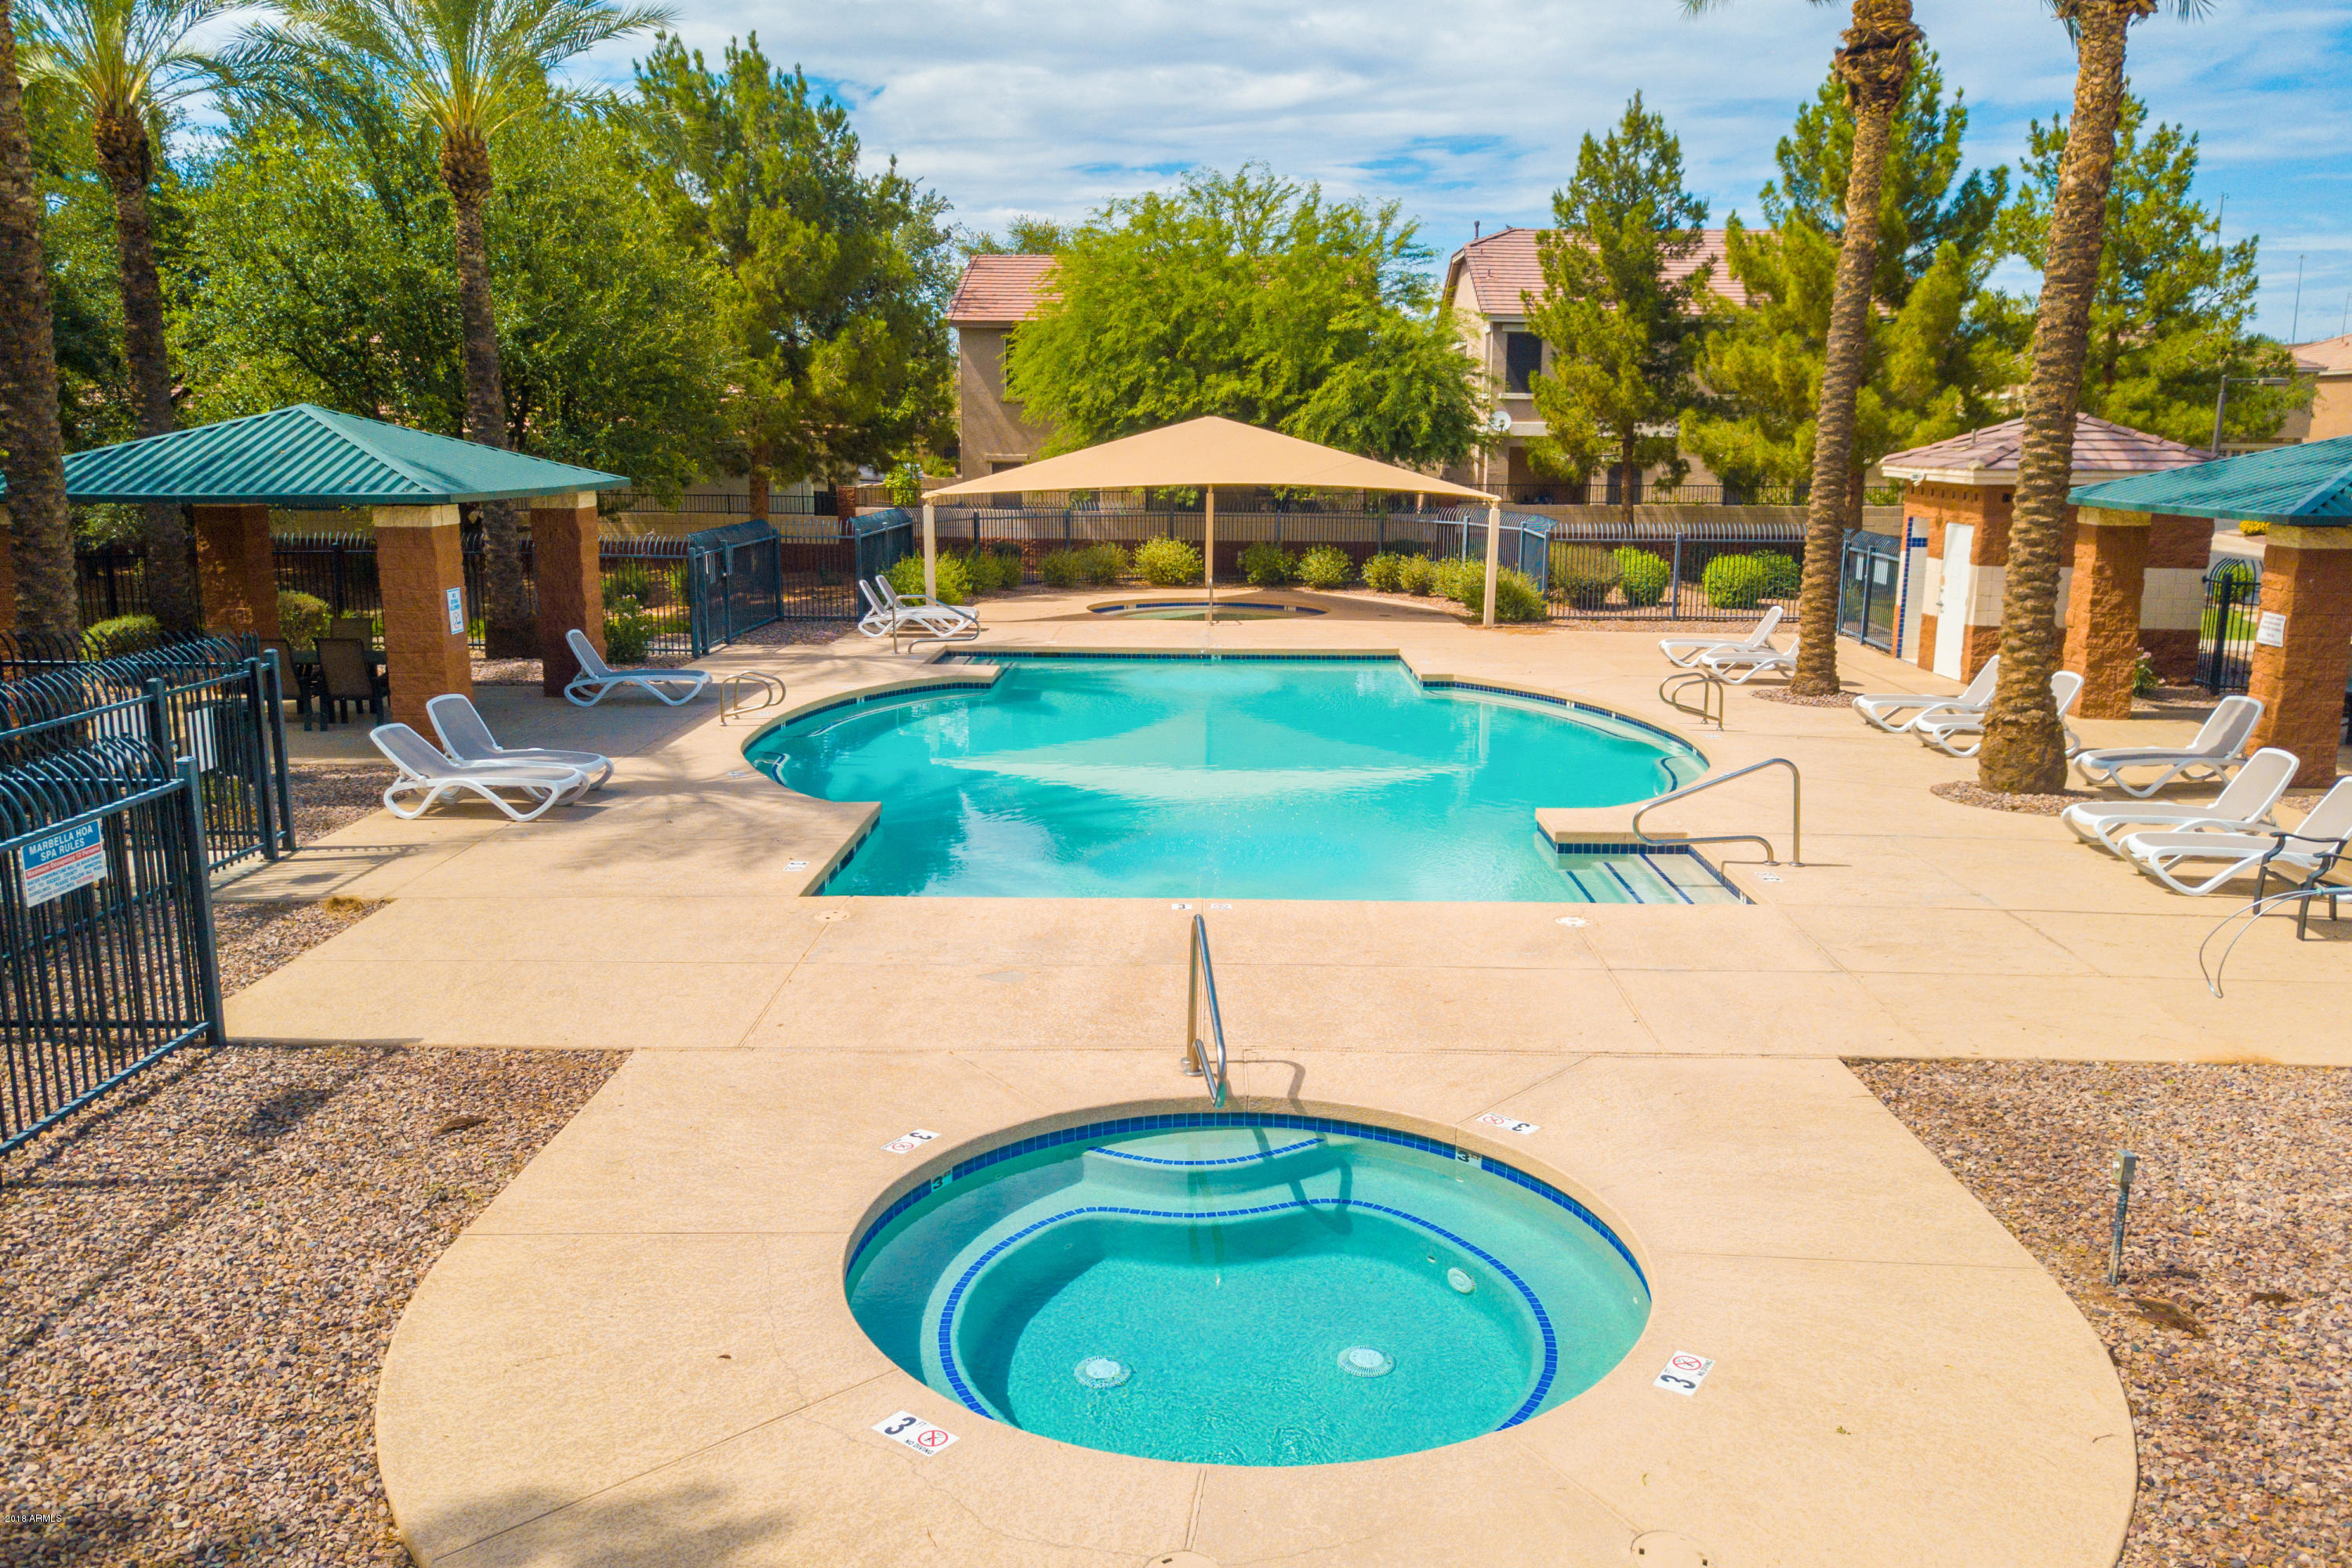 2105 S LUTHER Avenue, Mesa, AZ 85209 (MLS# 5793271) | New Traditions ...